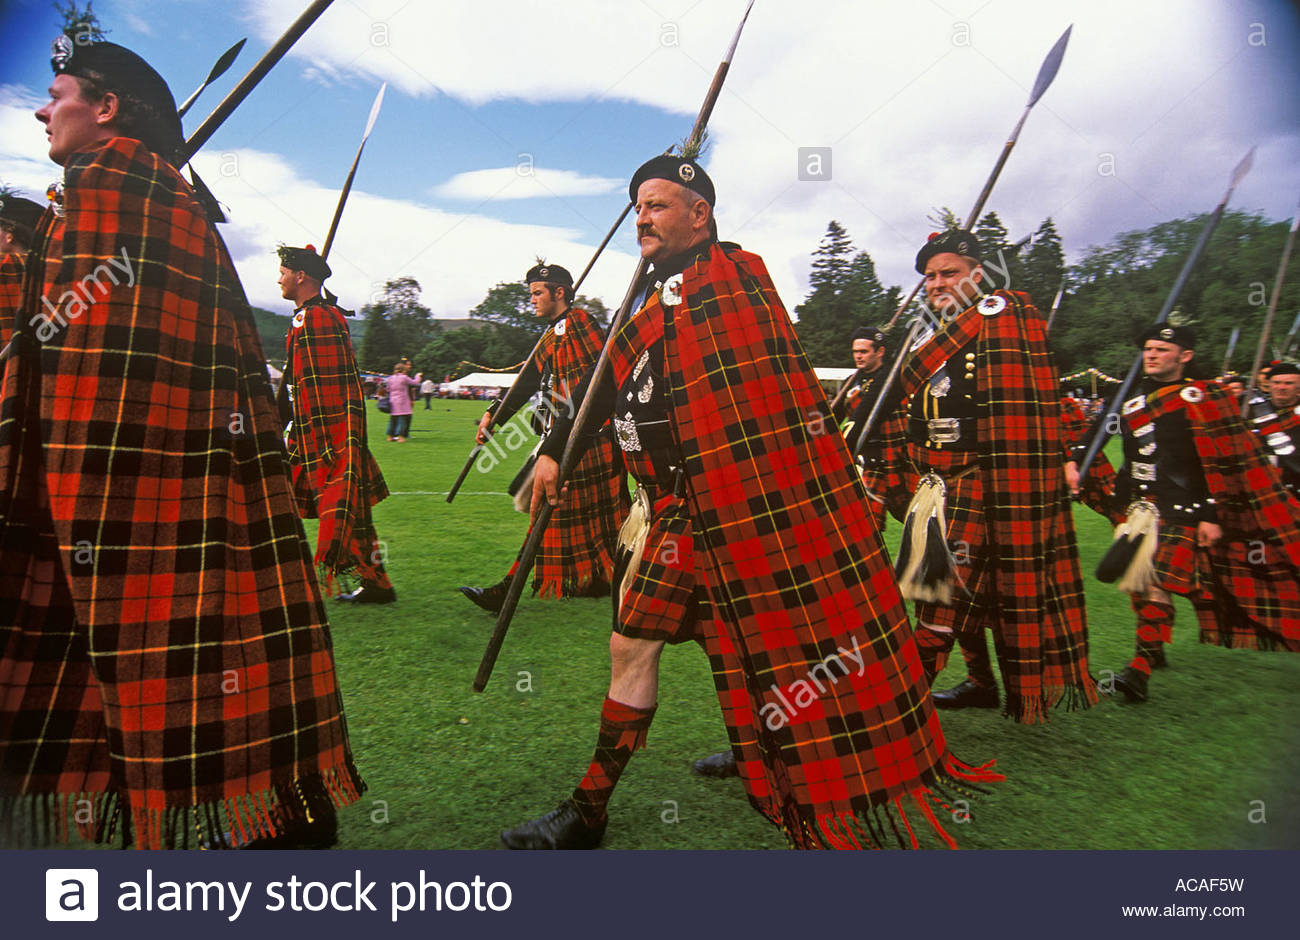 THE LONACH HIGHLANDERS MARCH AROUND THE GAMES FIELD AT THE LONACH HIGHLAND GAMES STRATHDON ABERDEENSHIRE - Stock Image